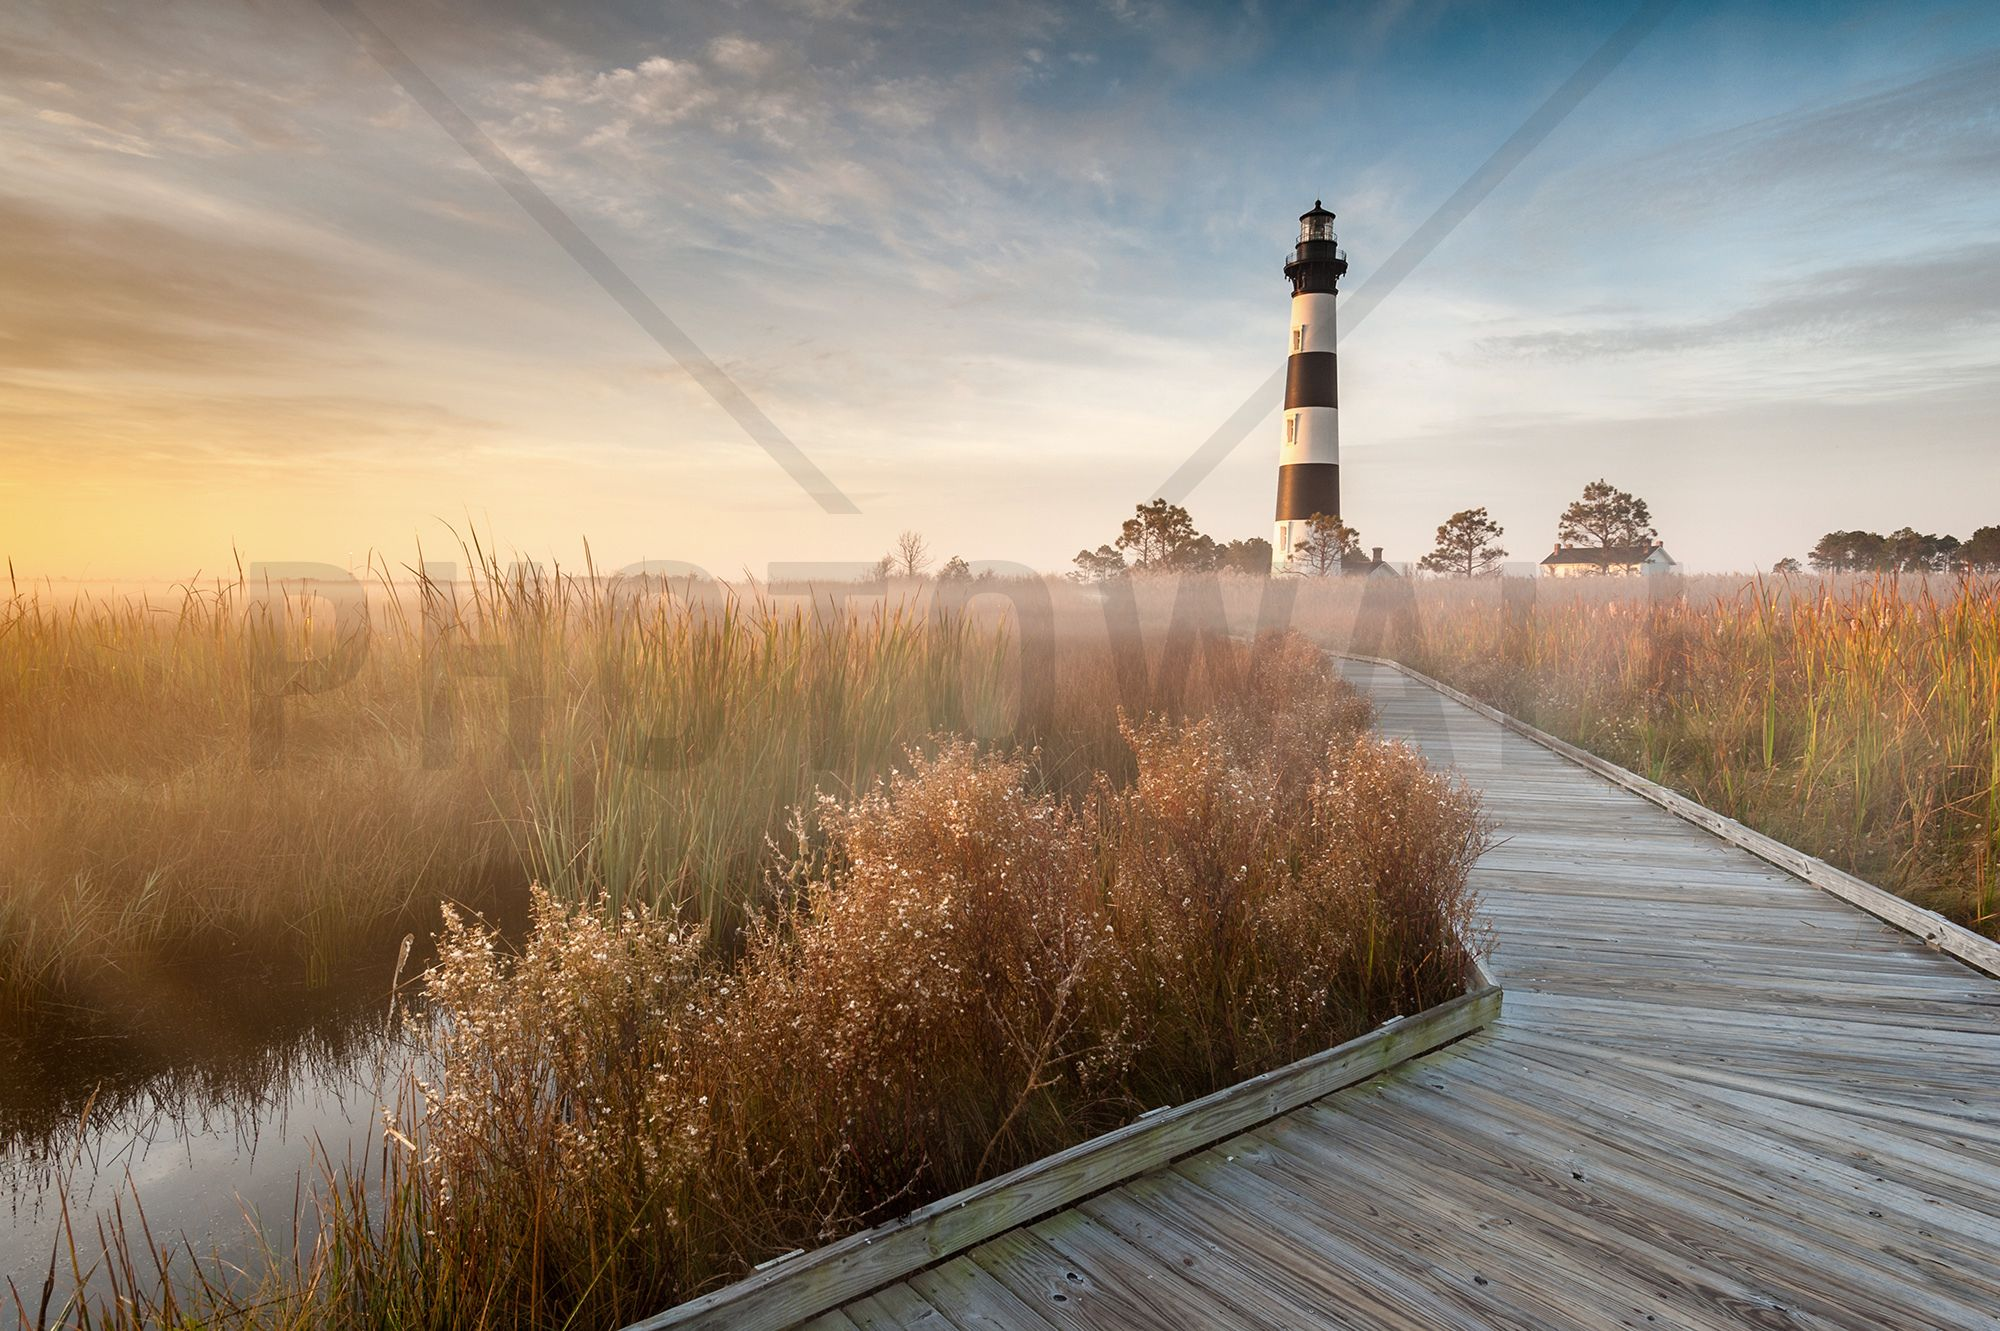 Lighthouse in North Carolina - Fototapeter & Tapeter - Photowall